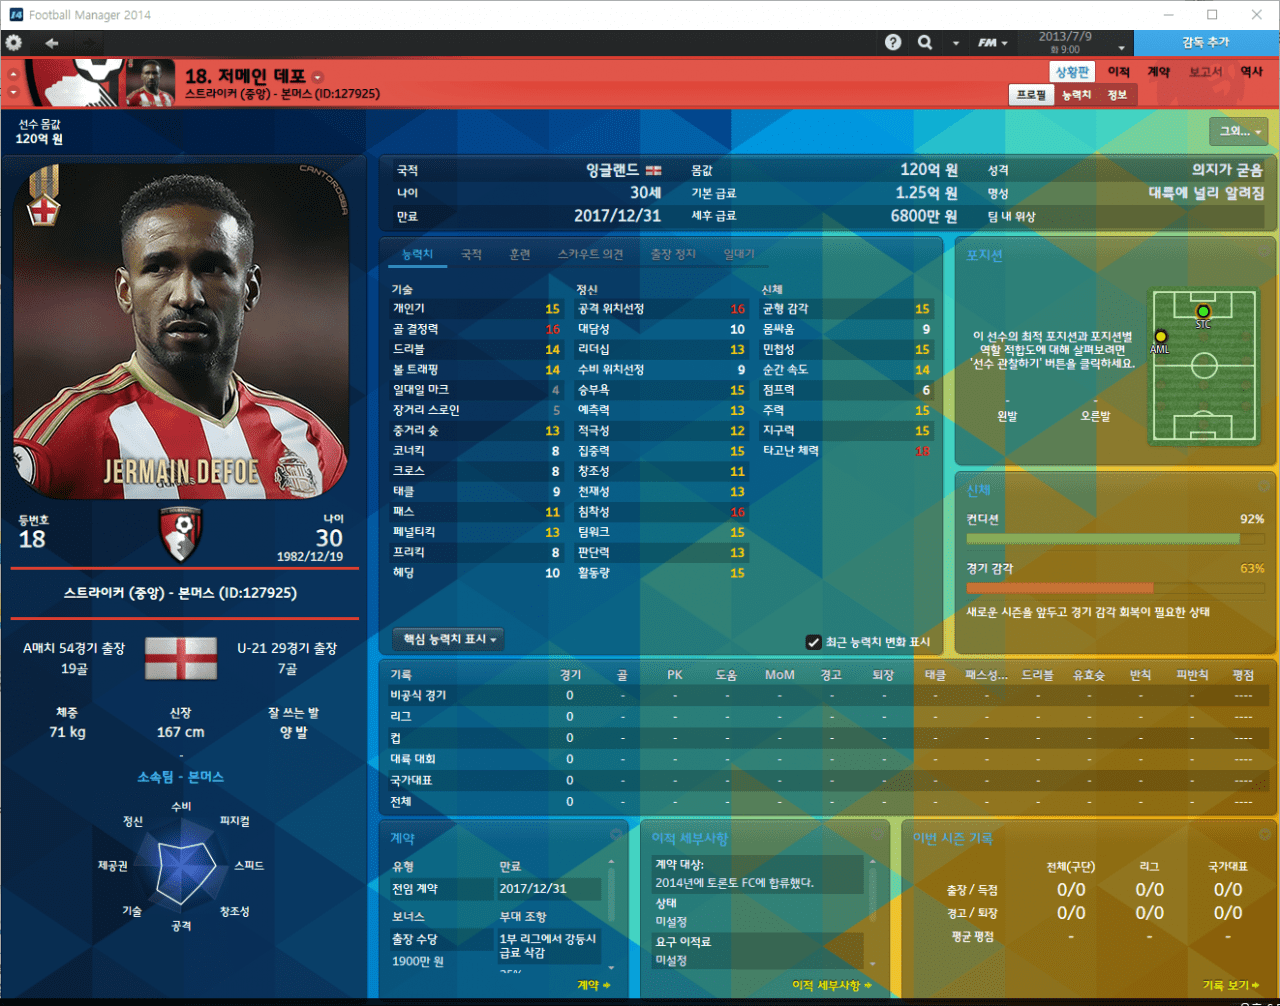 Defoe.PNG [14.3.1] Football Manager 2014 17-18 EU Transfer FMDONG ROSTER BETA v0.2